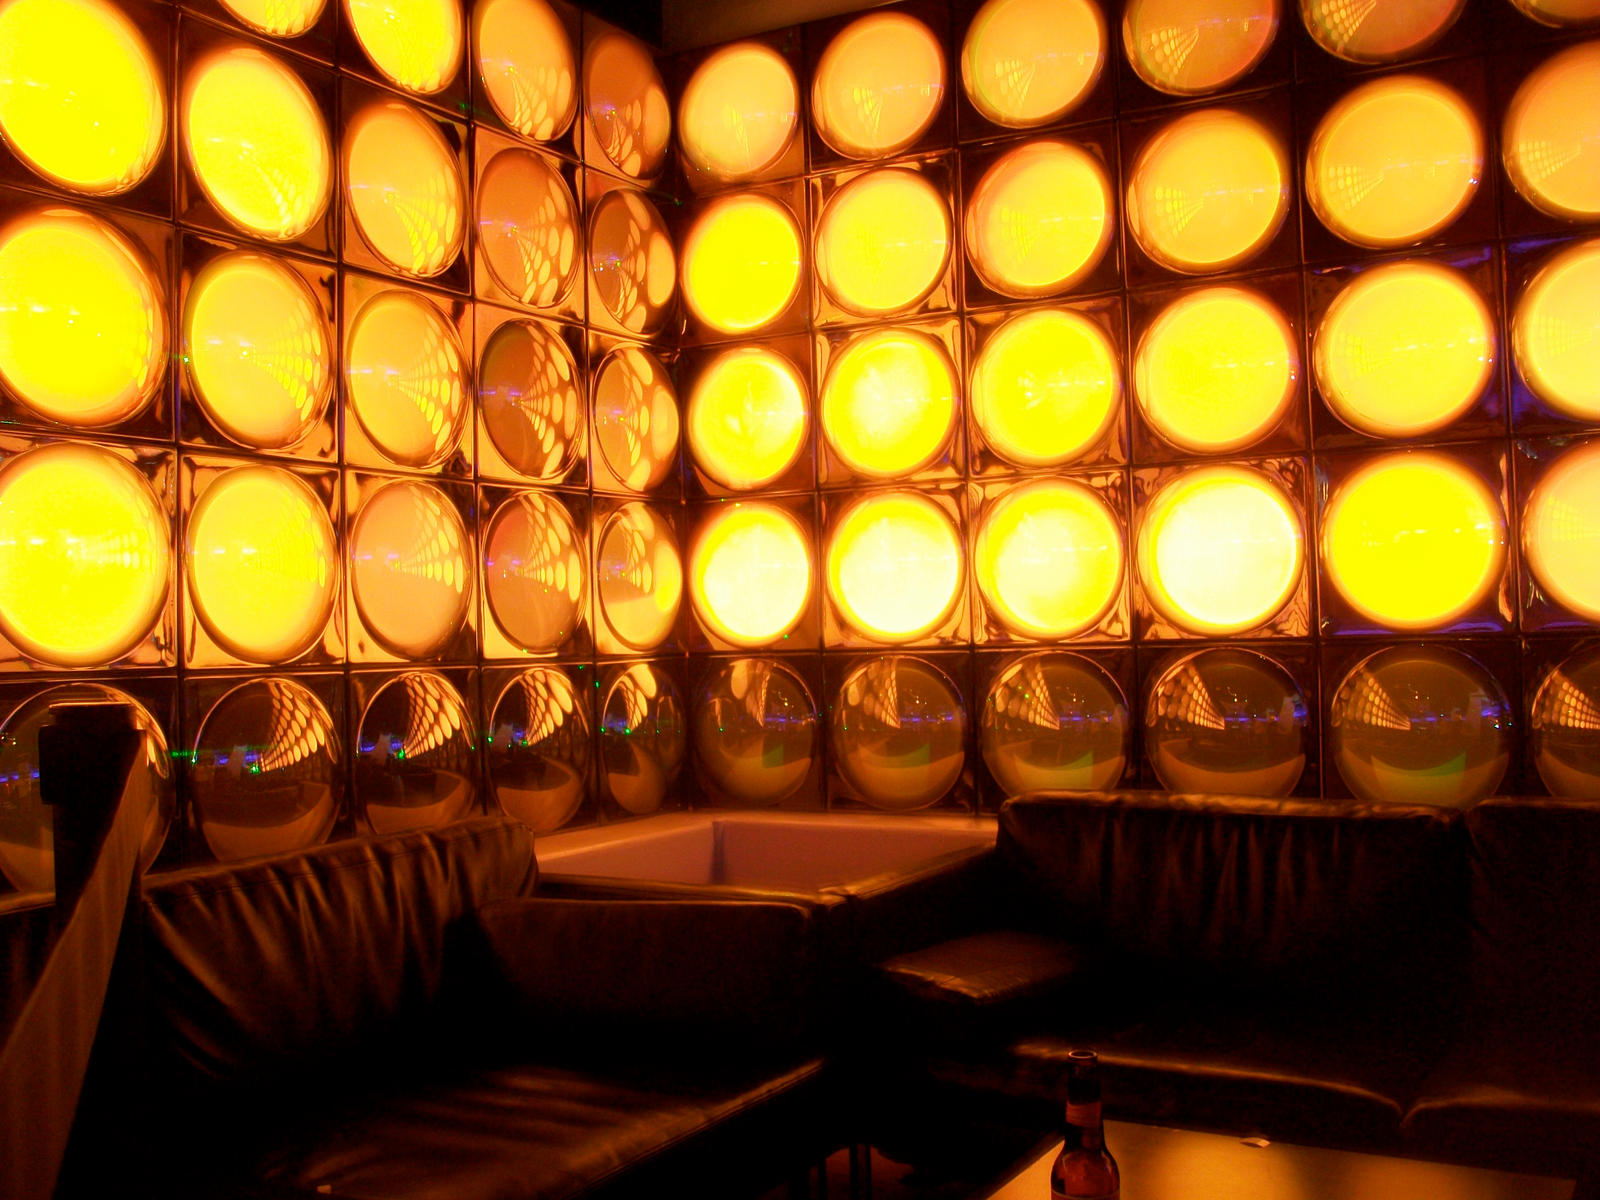 Wall of light by wesd00d on deviantart wall of light by wesd00d aloadofball Image collections